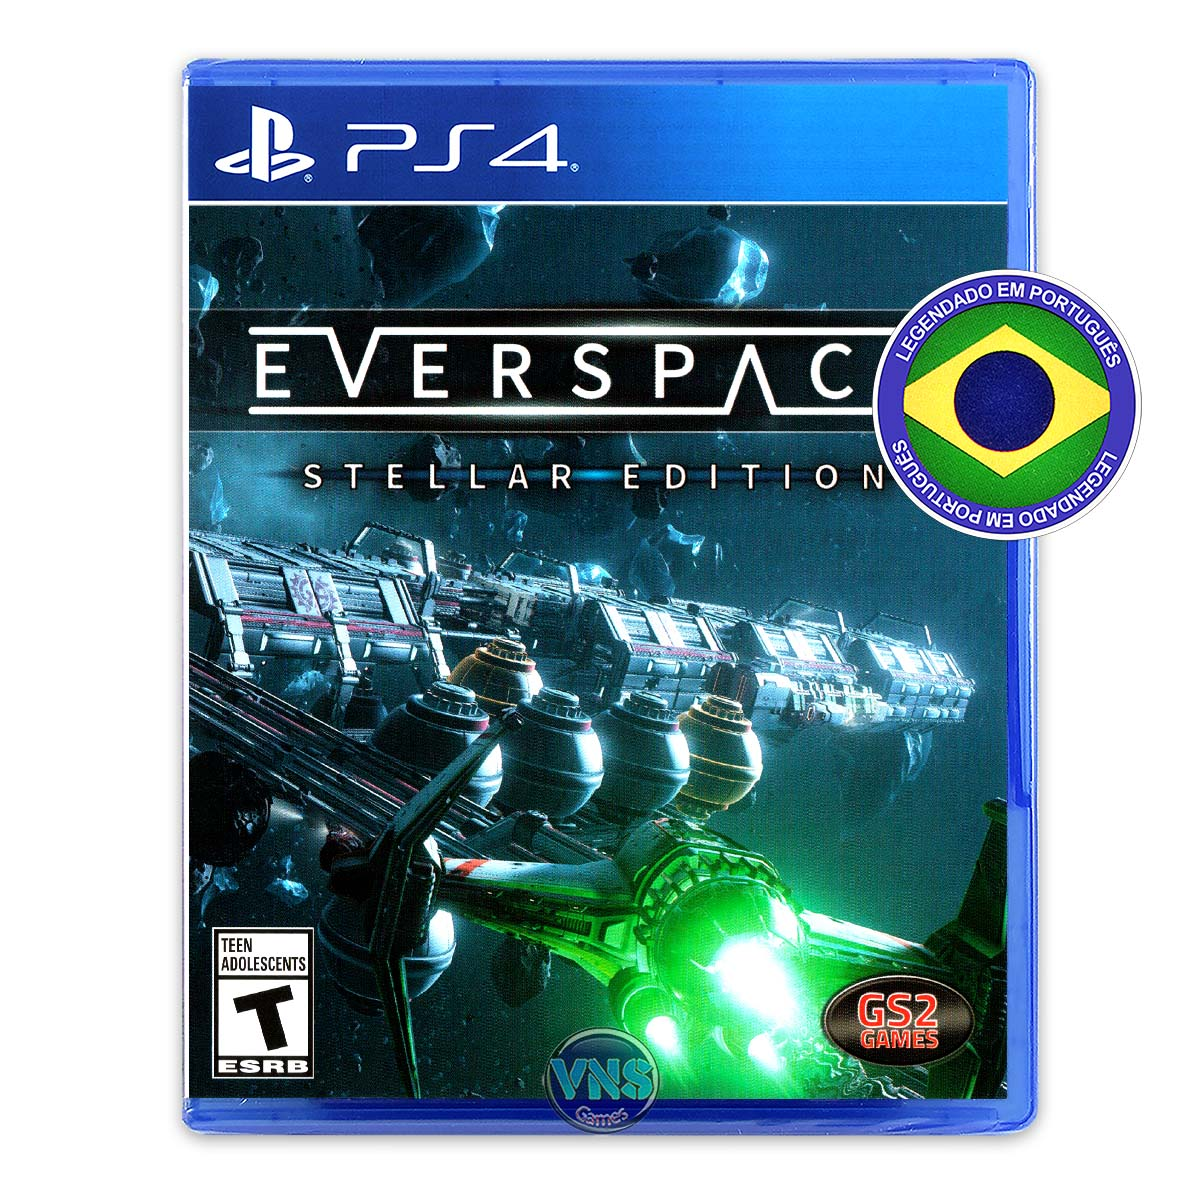 Everspace Stellar Edition - PS4